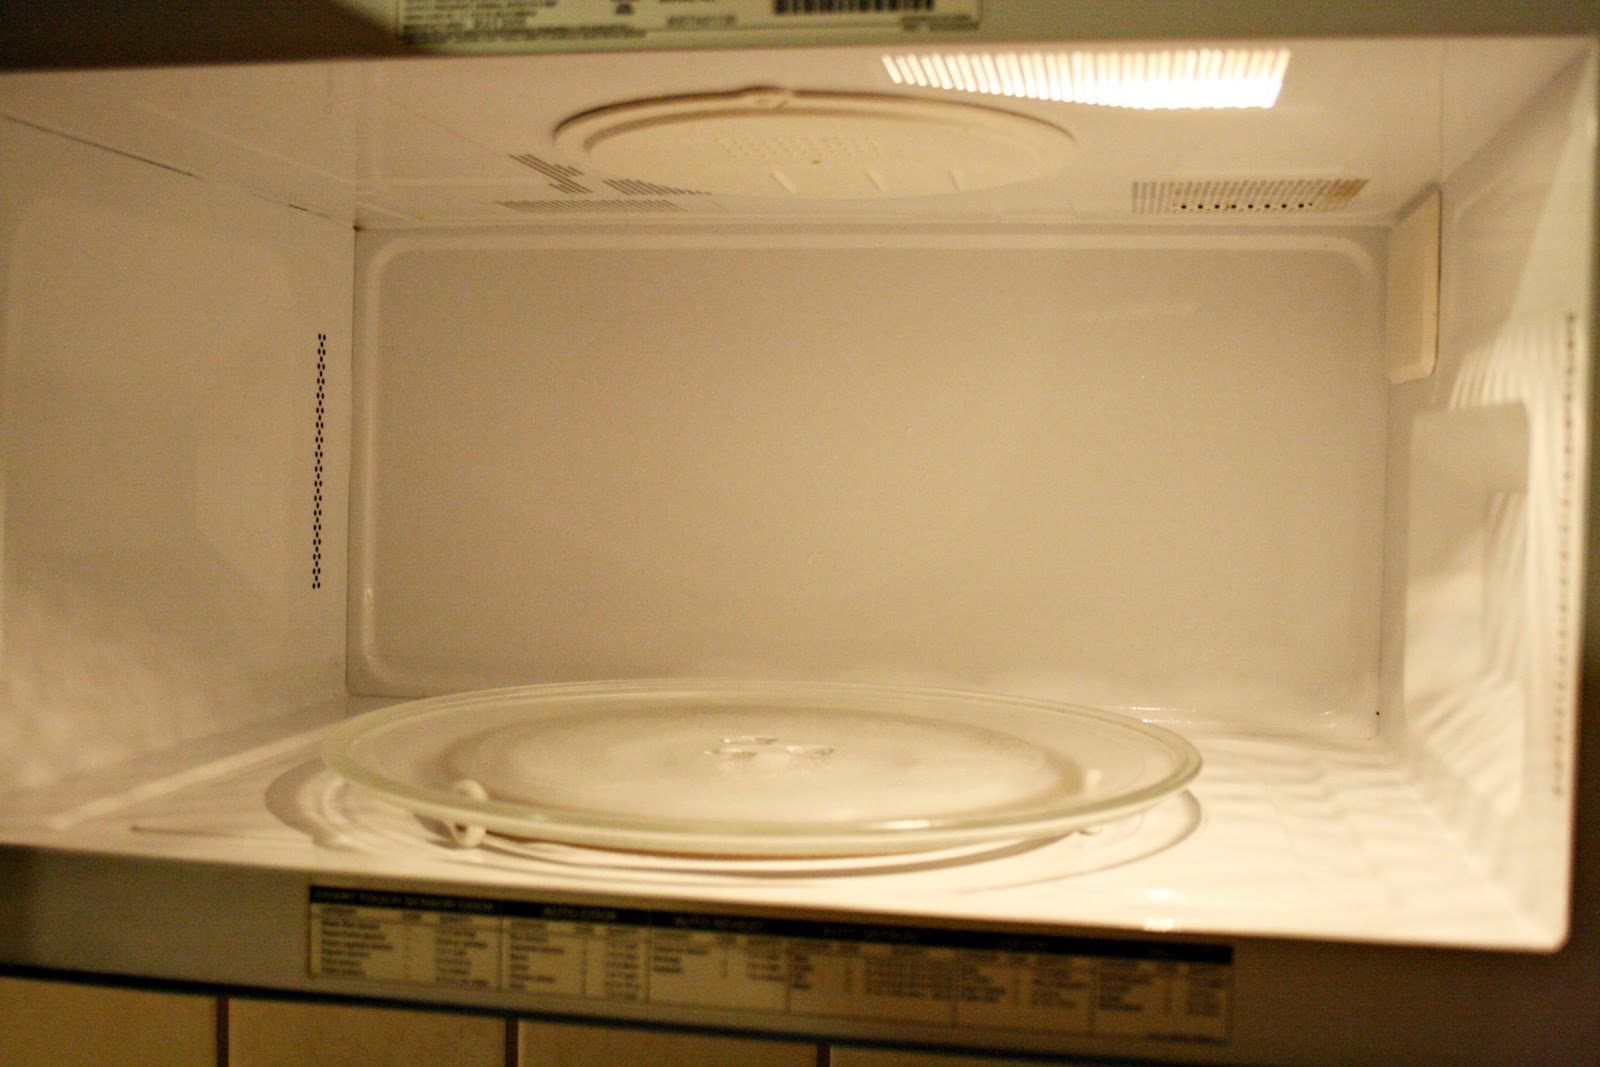 how to clean my microwave